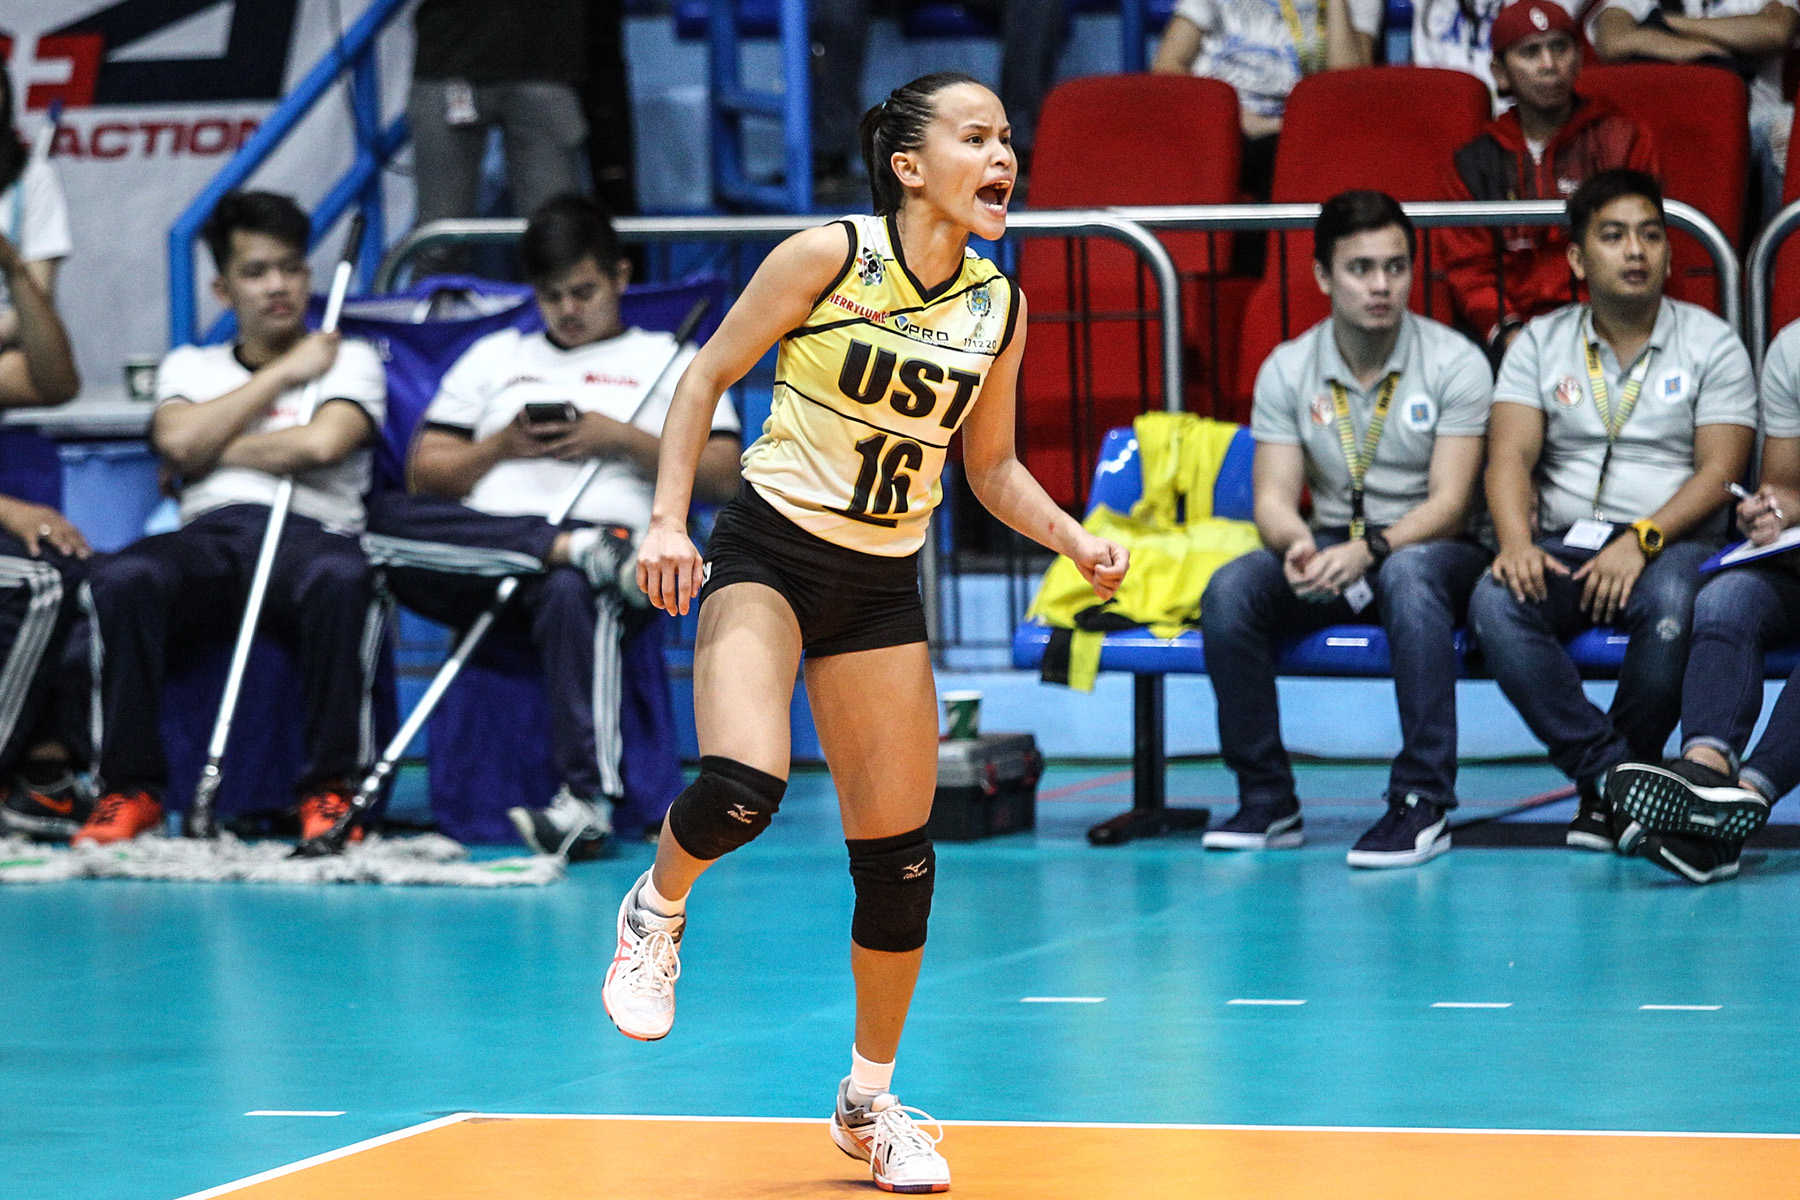 ONE LAST PUSH. UST will rely on usuals such as Cherry Rondina as it makes one last push for a long-awaited Final Four return. File Photo by Josh Albelda/Rappler